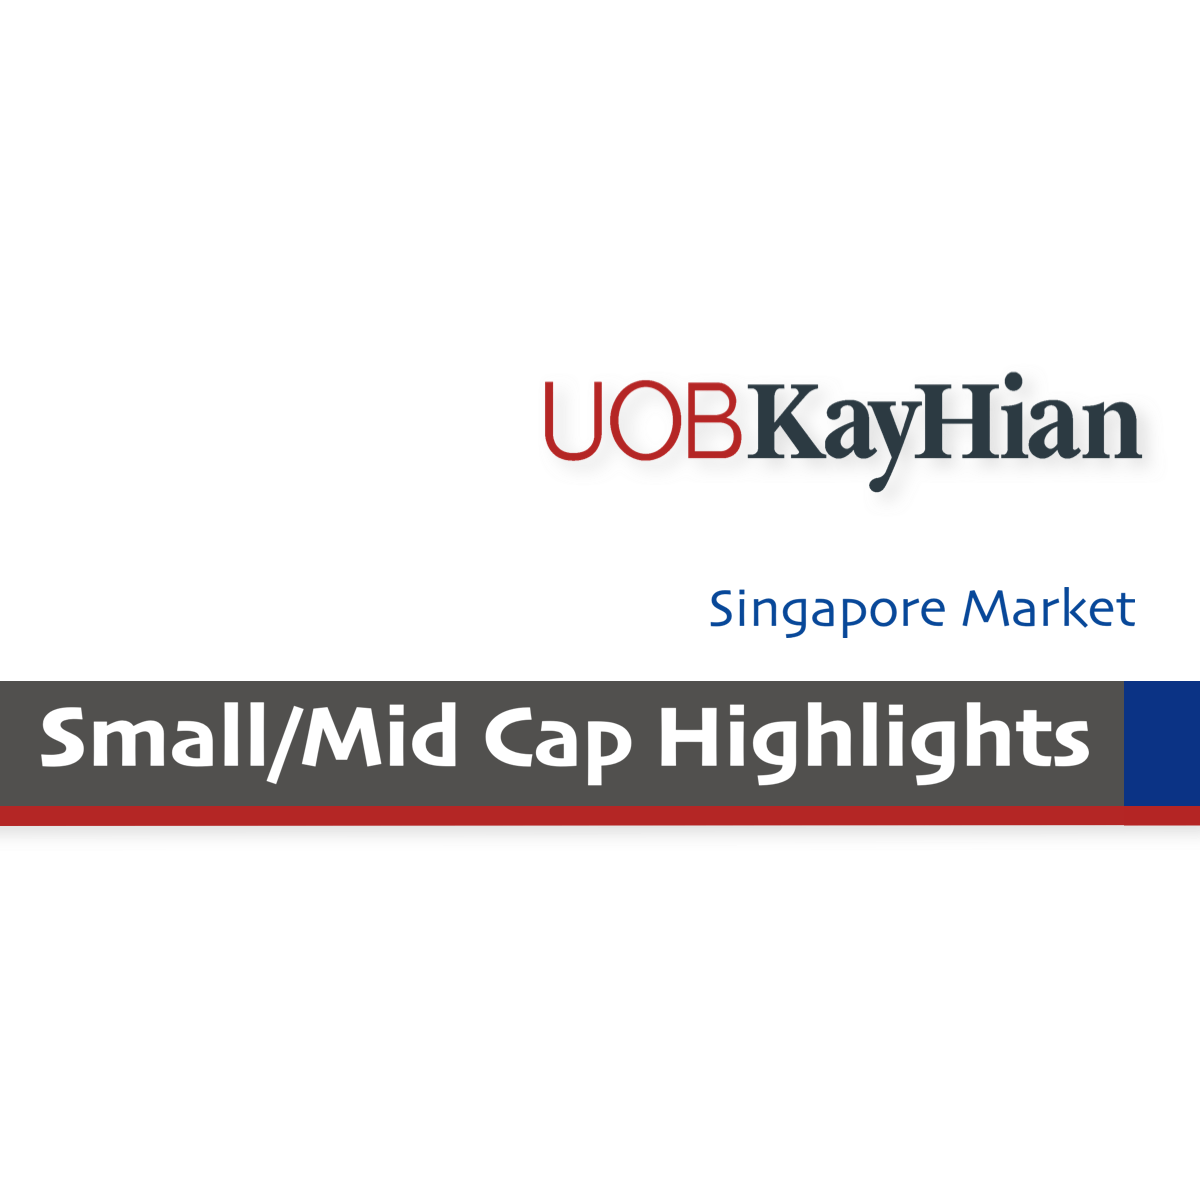 Singapore Small-Mid Cap Highlights - UOB Kay Hian Research  | SGinvestors.io